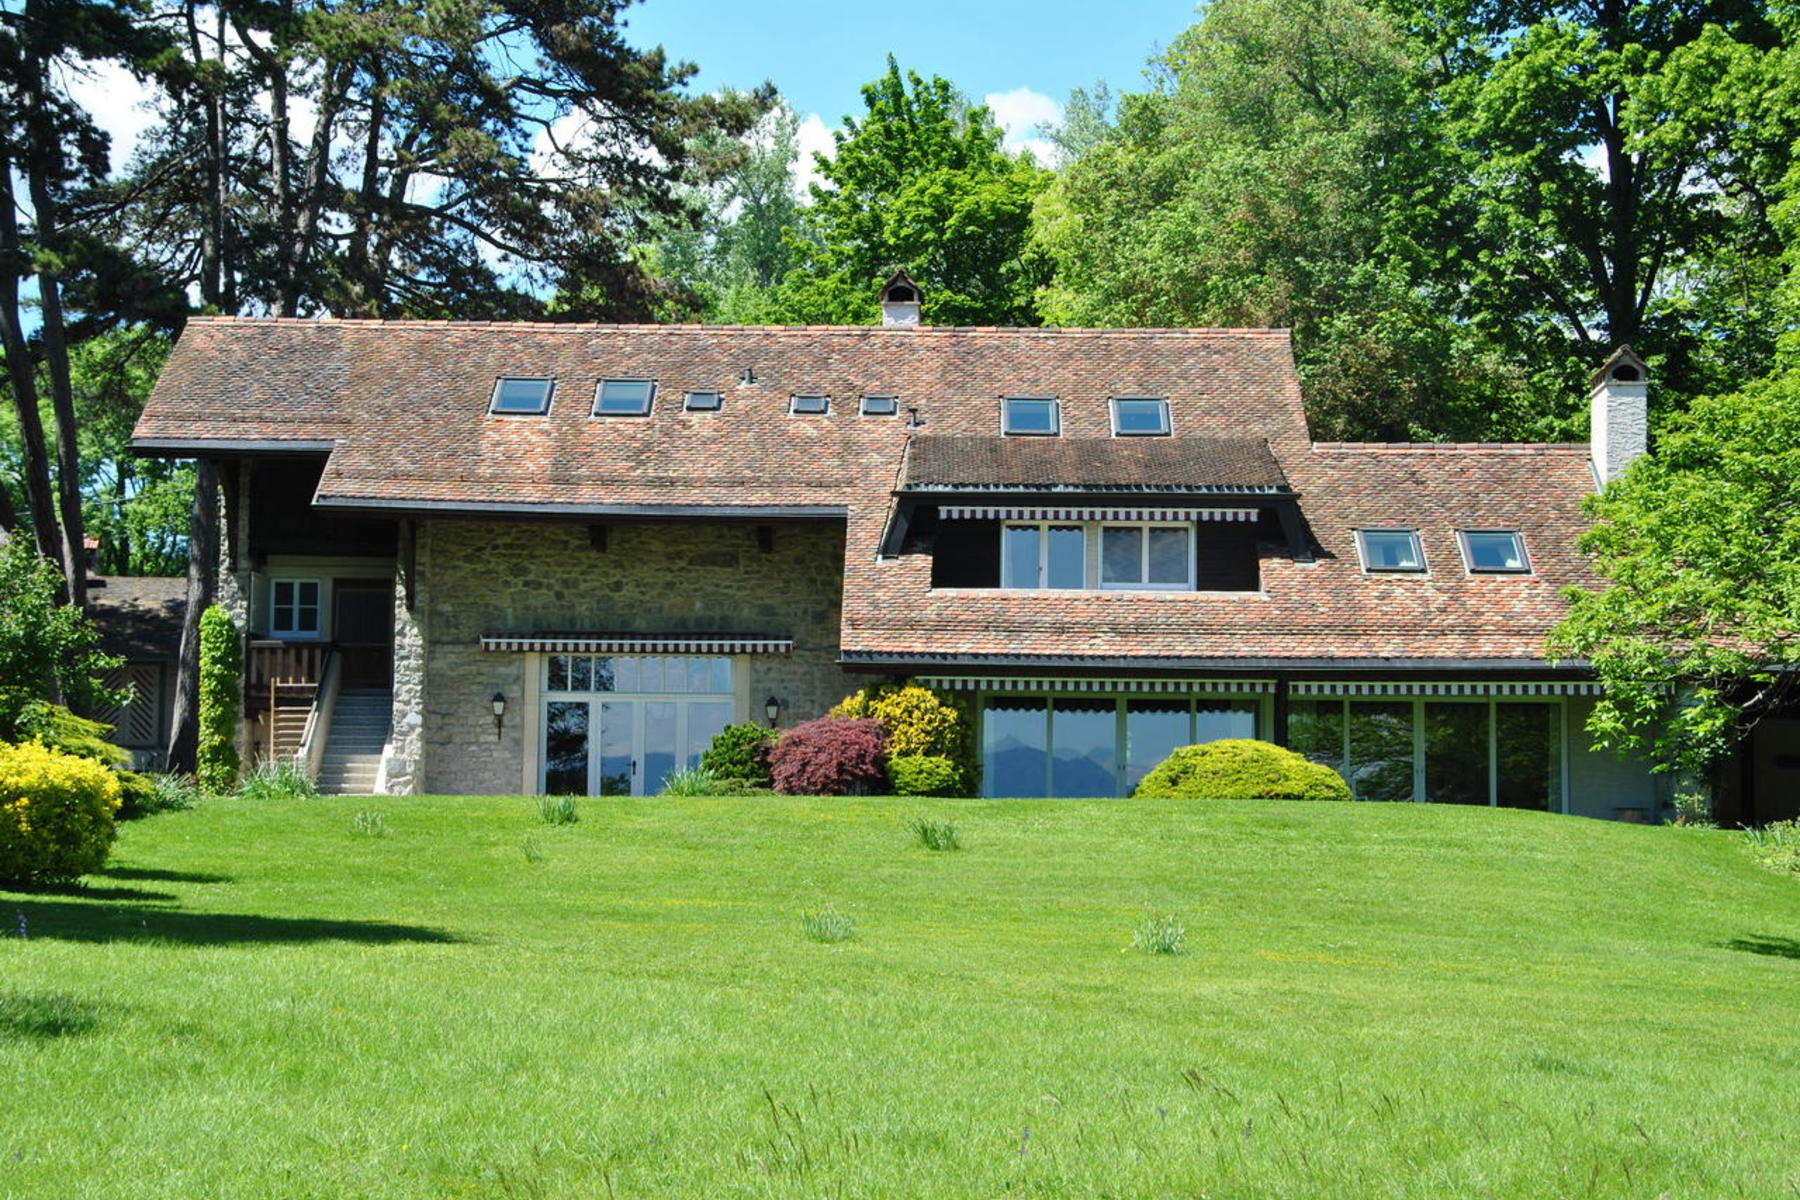 Single Family Home for Sale at For sale, Single family house, 1298 Céligny, Réf 7388 Other Switzerland, Other Areas In Switzerland, 1298 Switzerland